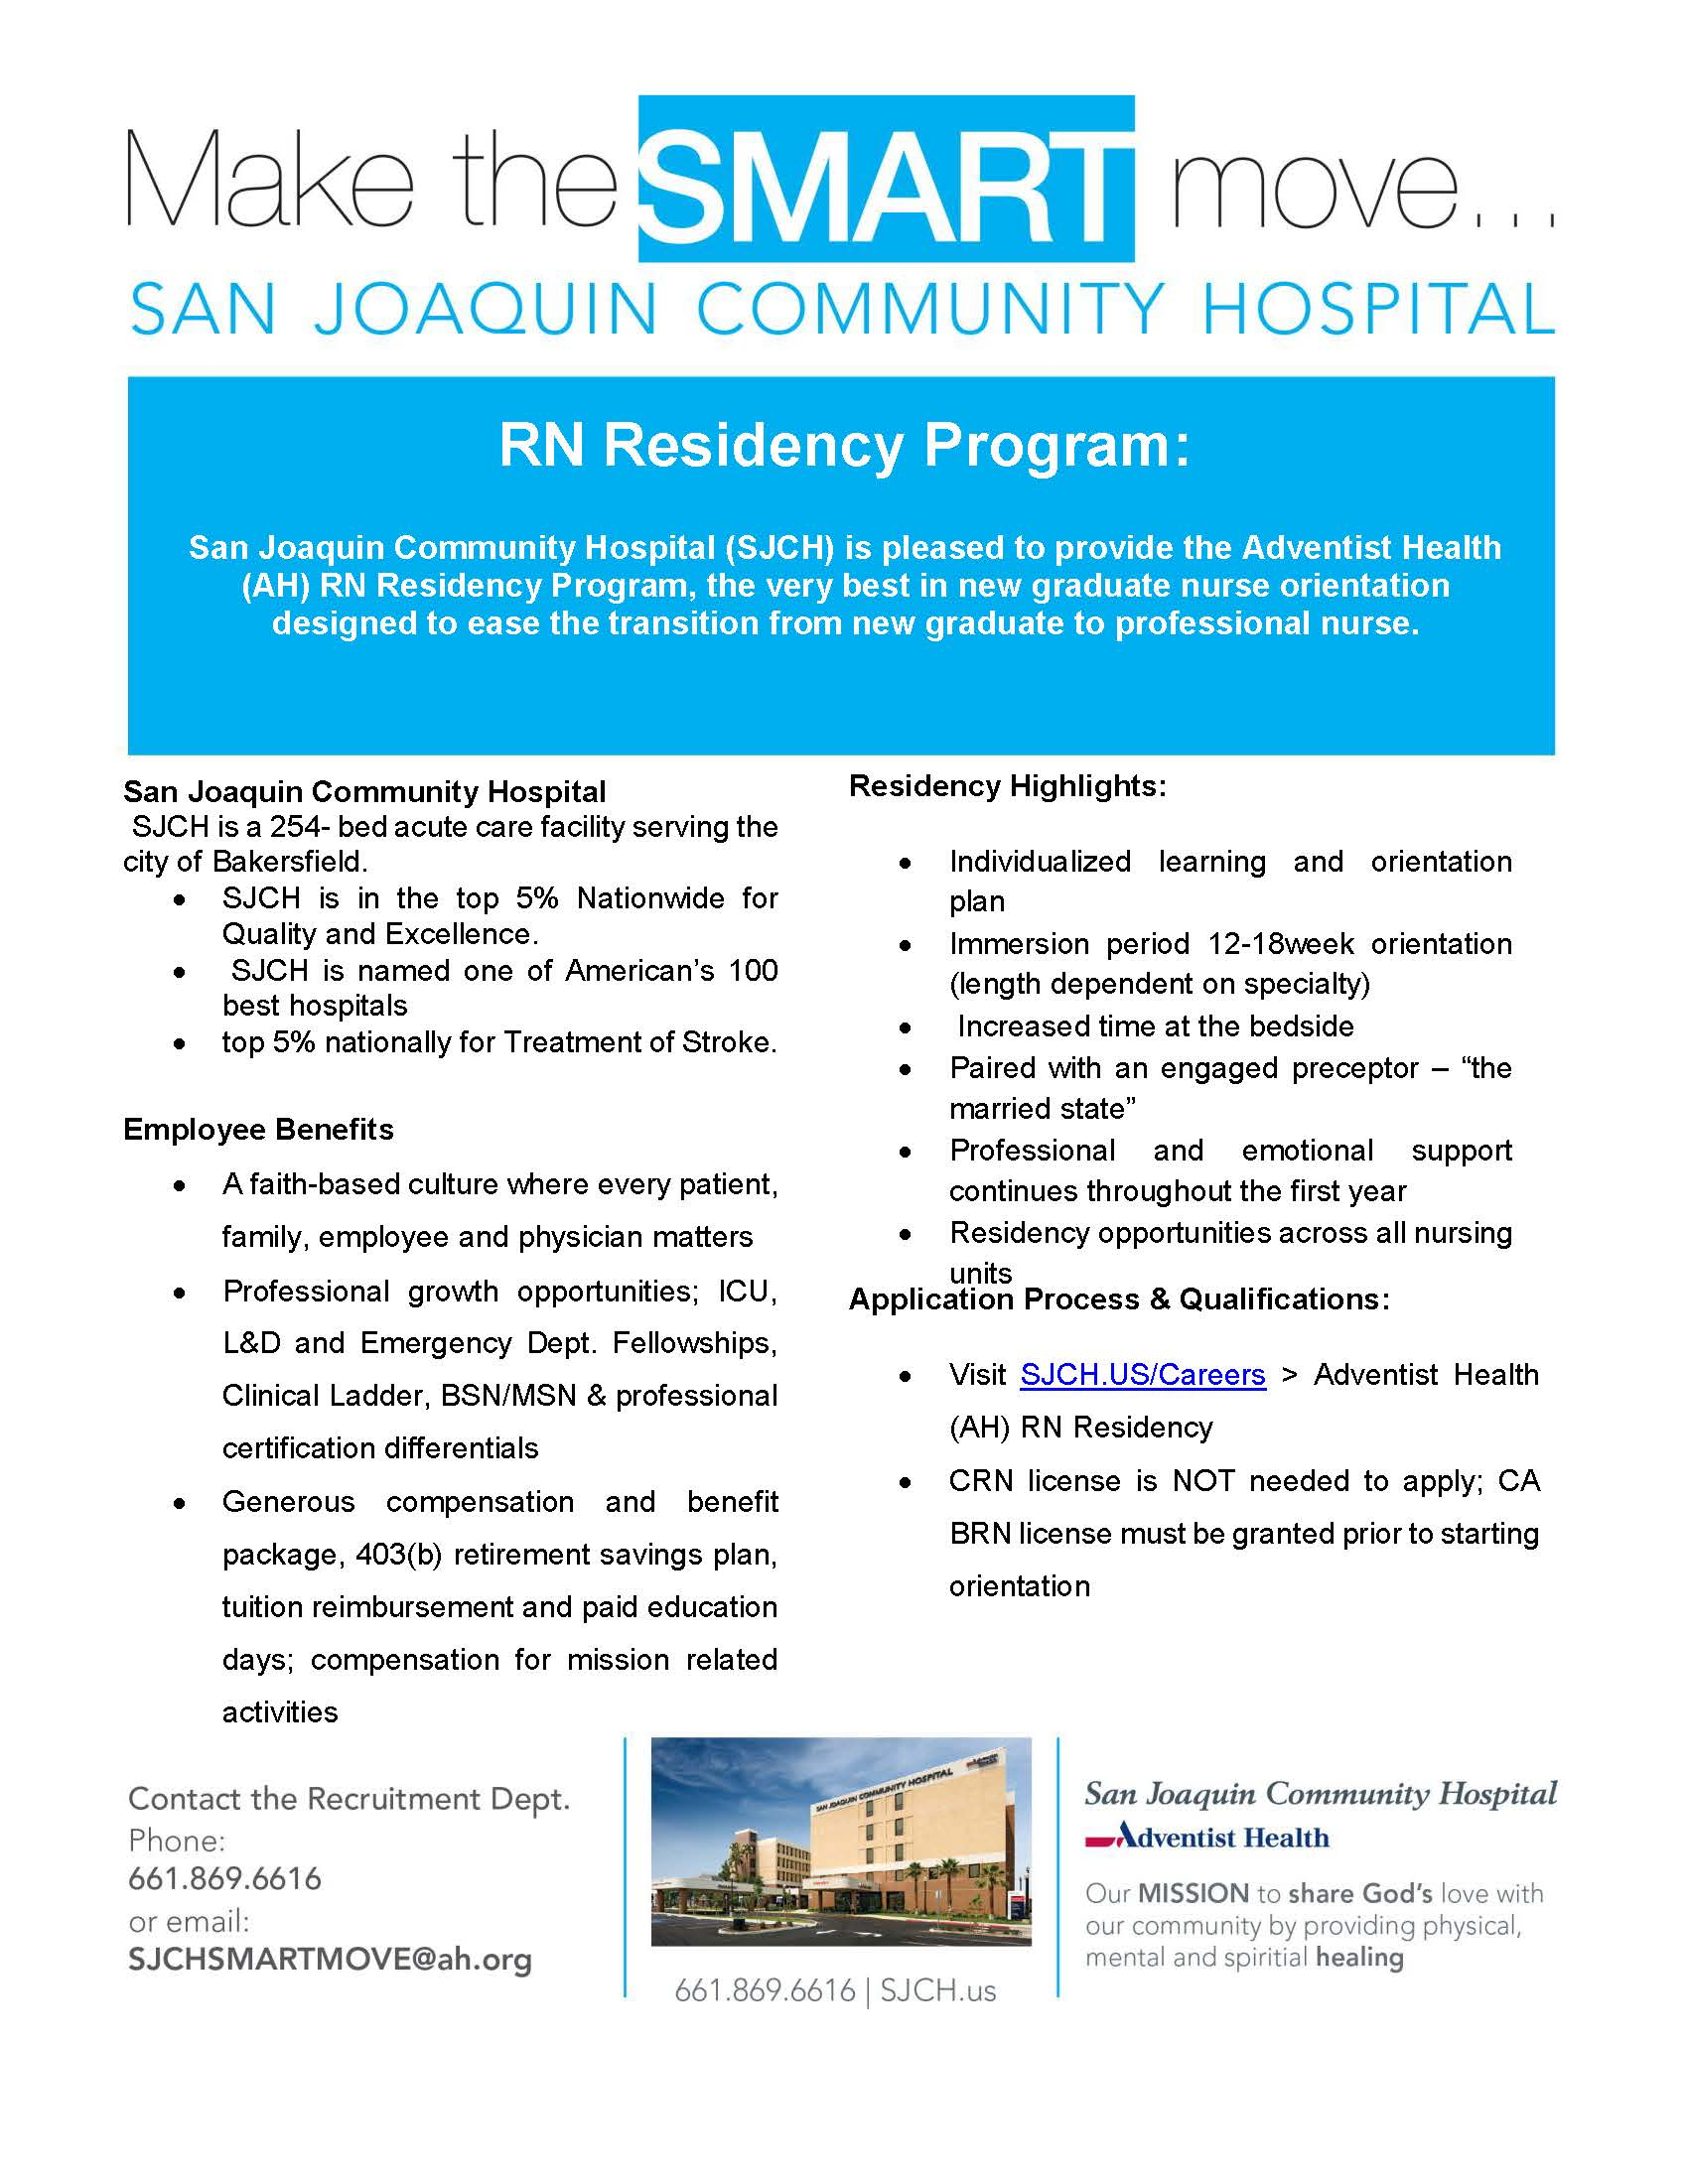 Make the smart move... San Joaquin Community Hospital RN Residency Program: San Joaquin Community Hospital is pleased to provide the Adventist Health (AH) RN Residency Program, the very best in new graduate nurse orientation designed to ease the transition from new graduate to professional nurse.